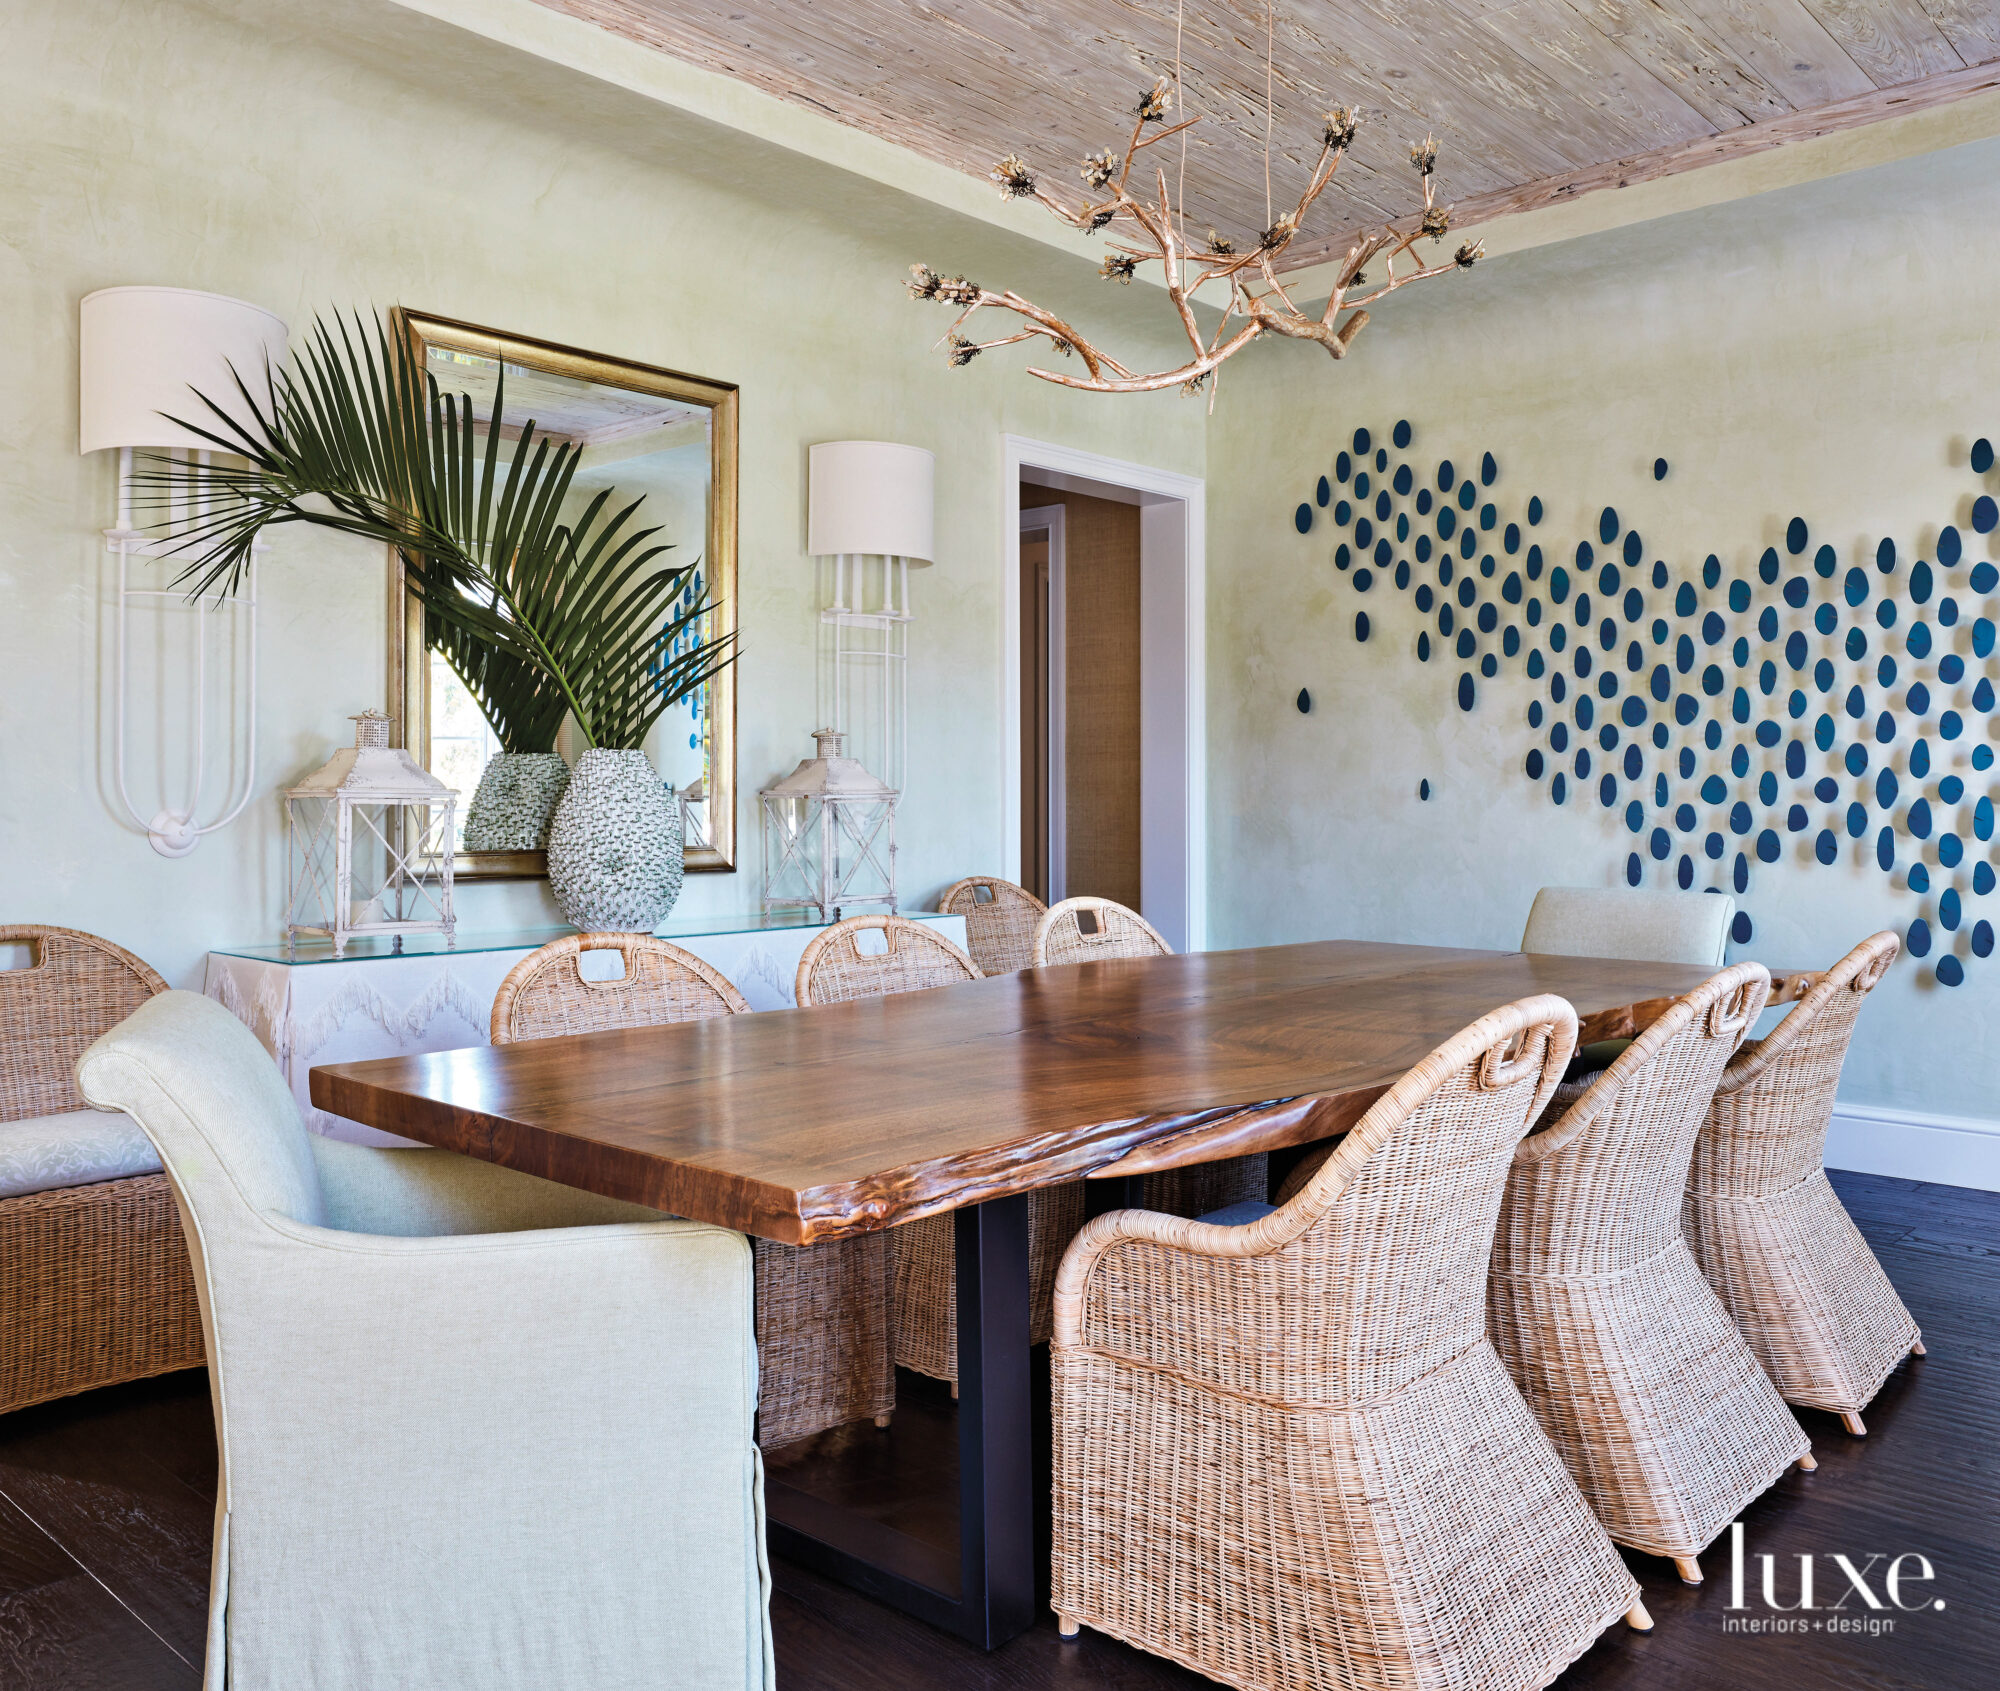 Dining room with light green walls, pecky cypress ceiling and rattan chairs.